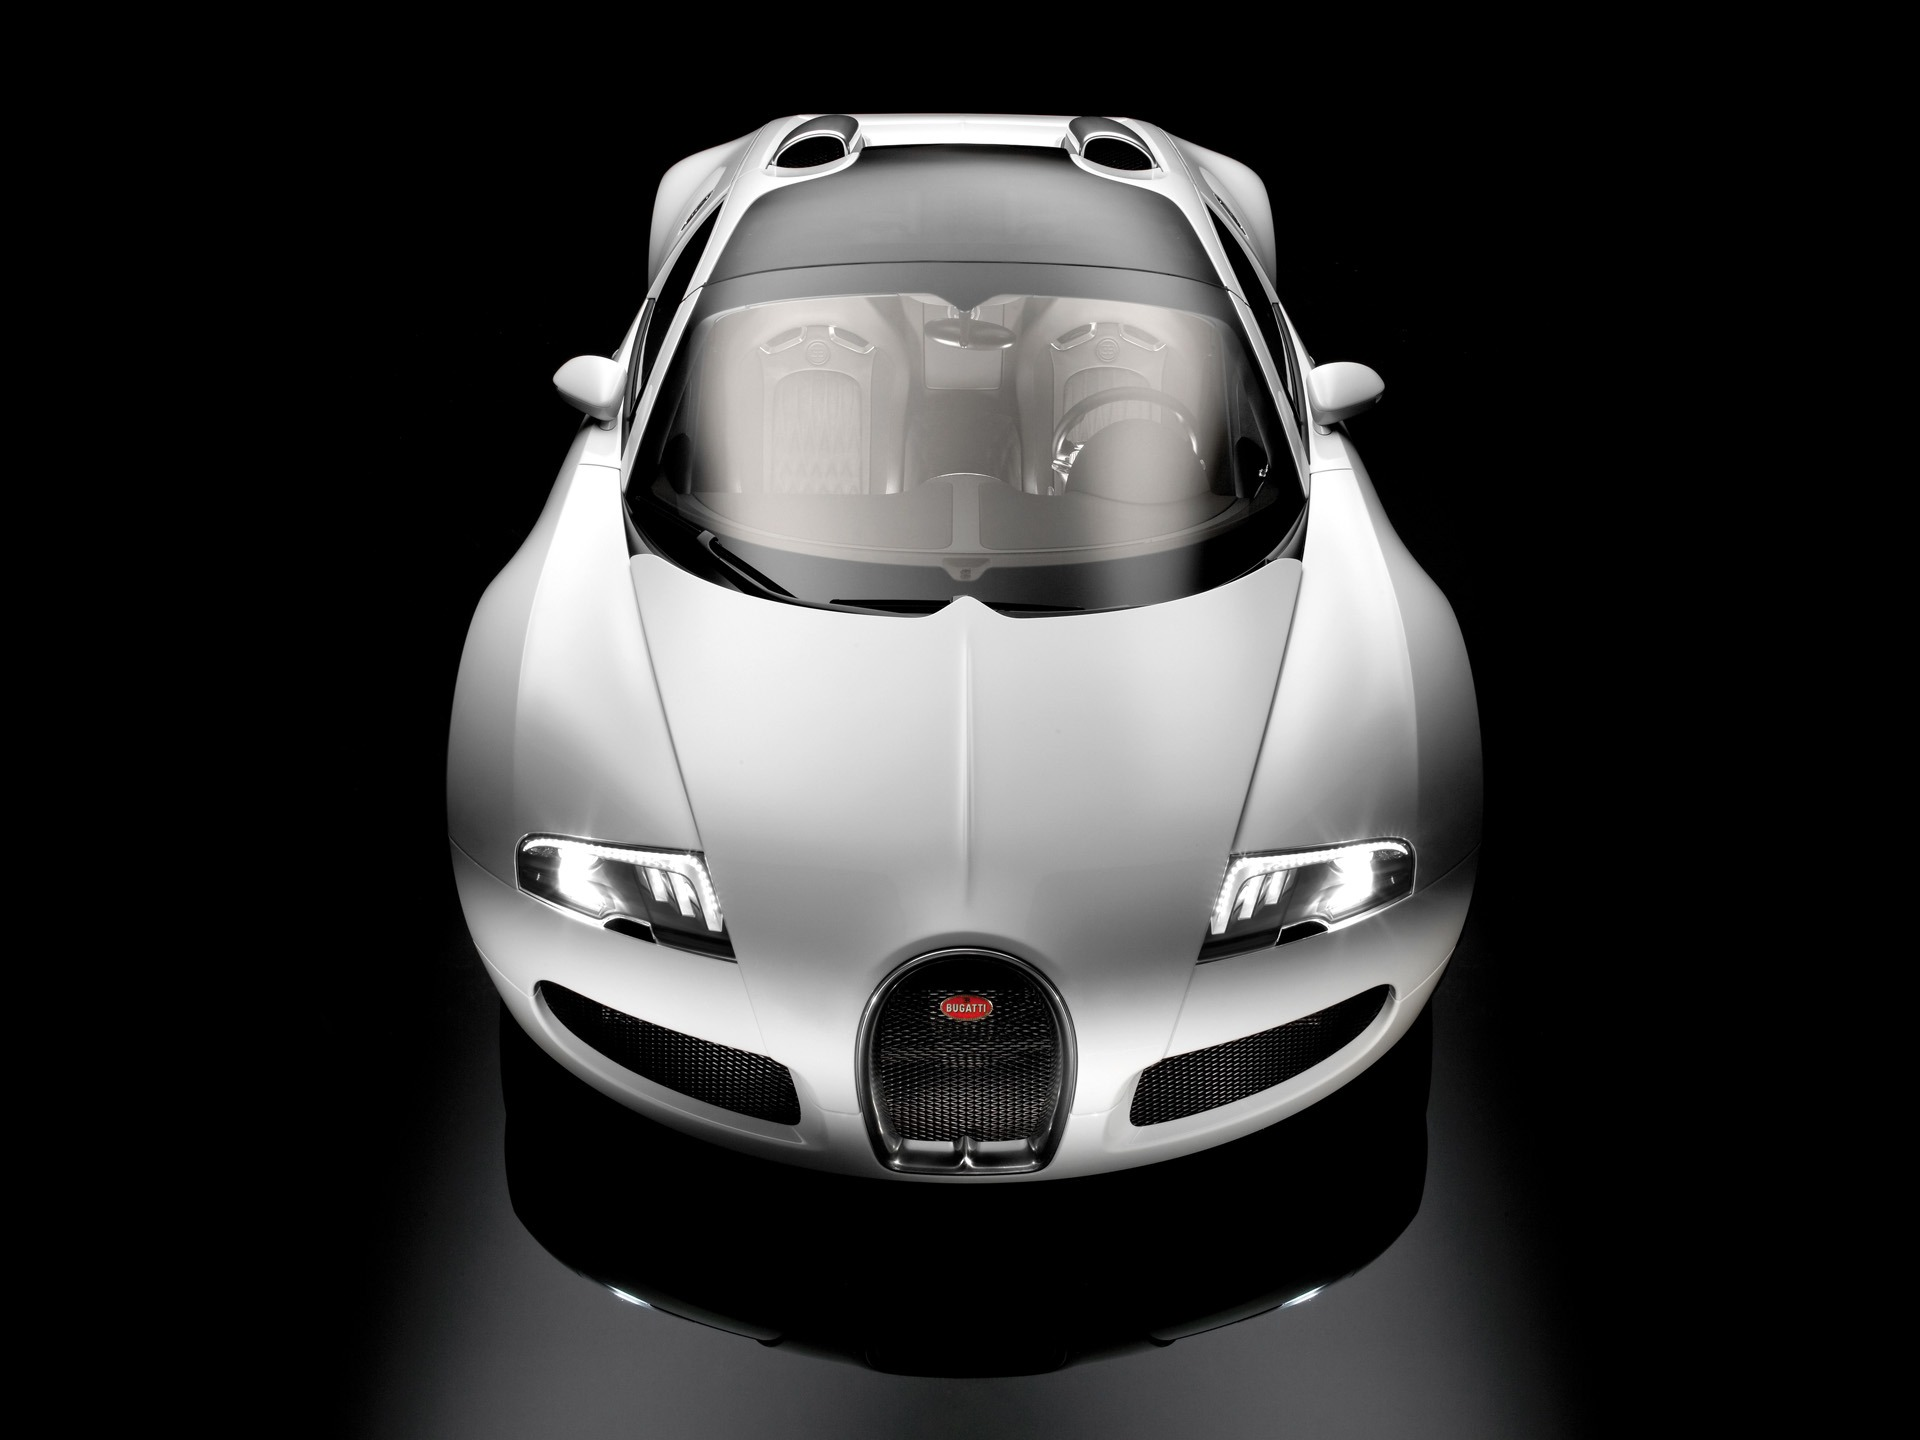 Bugatti Veyron Grand Sport Wallpaper Bugatti Cars Wallpapers In Jpg Format For Free Download